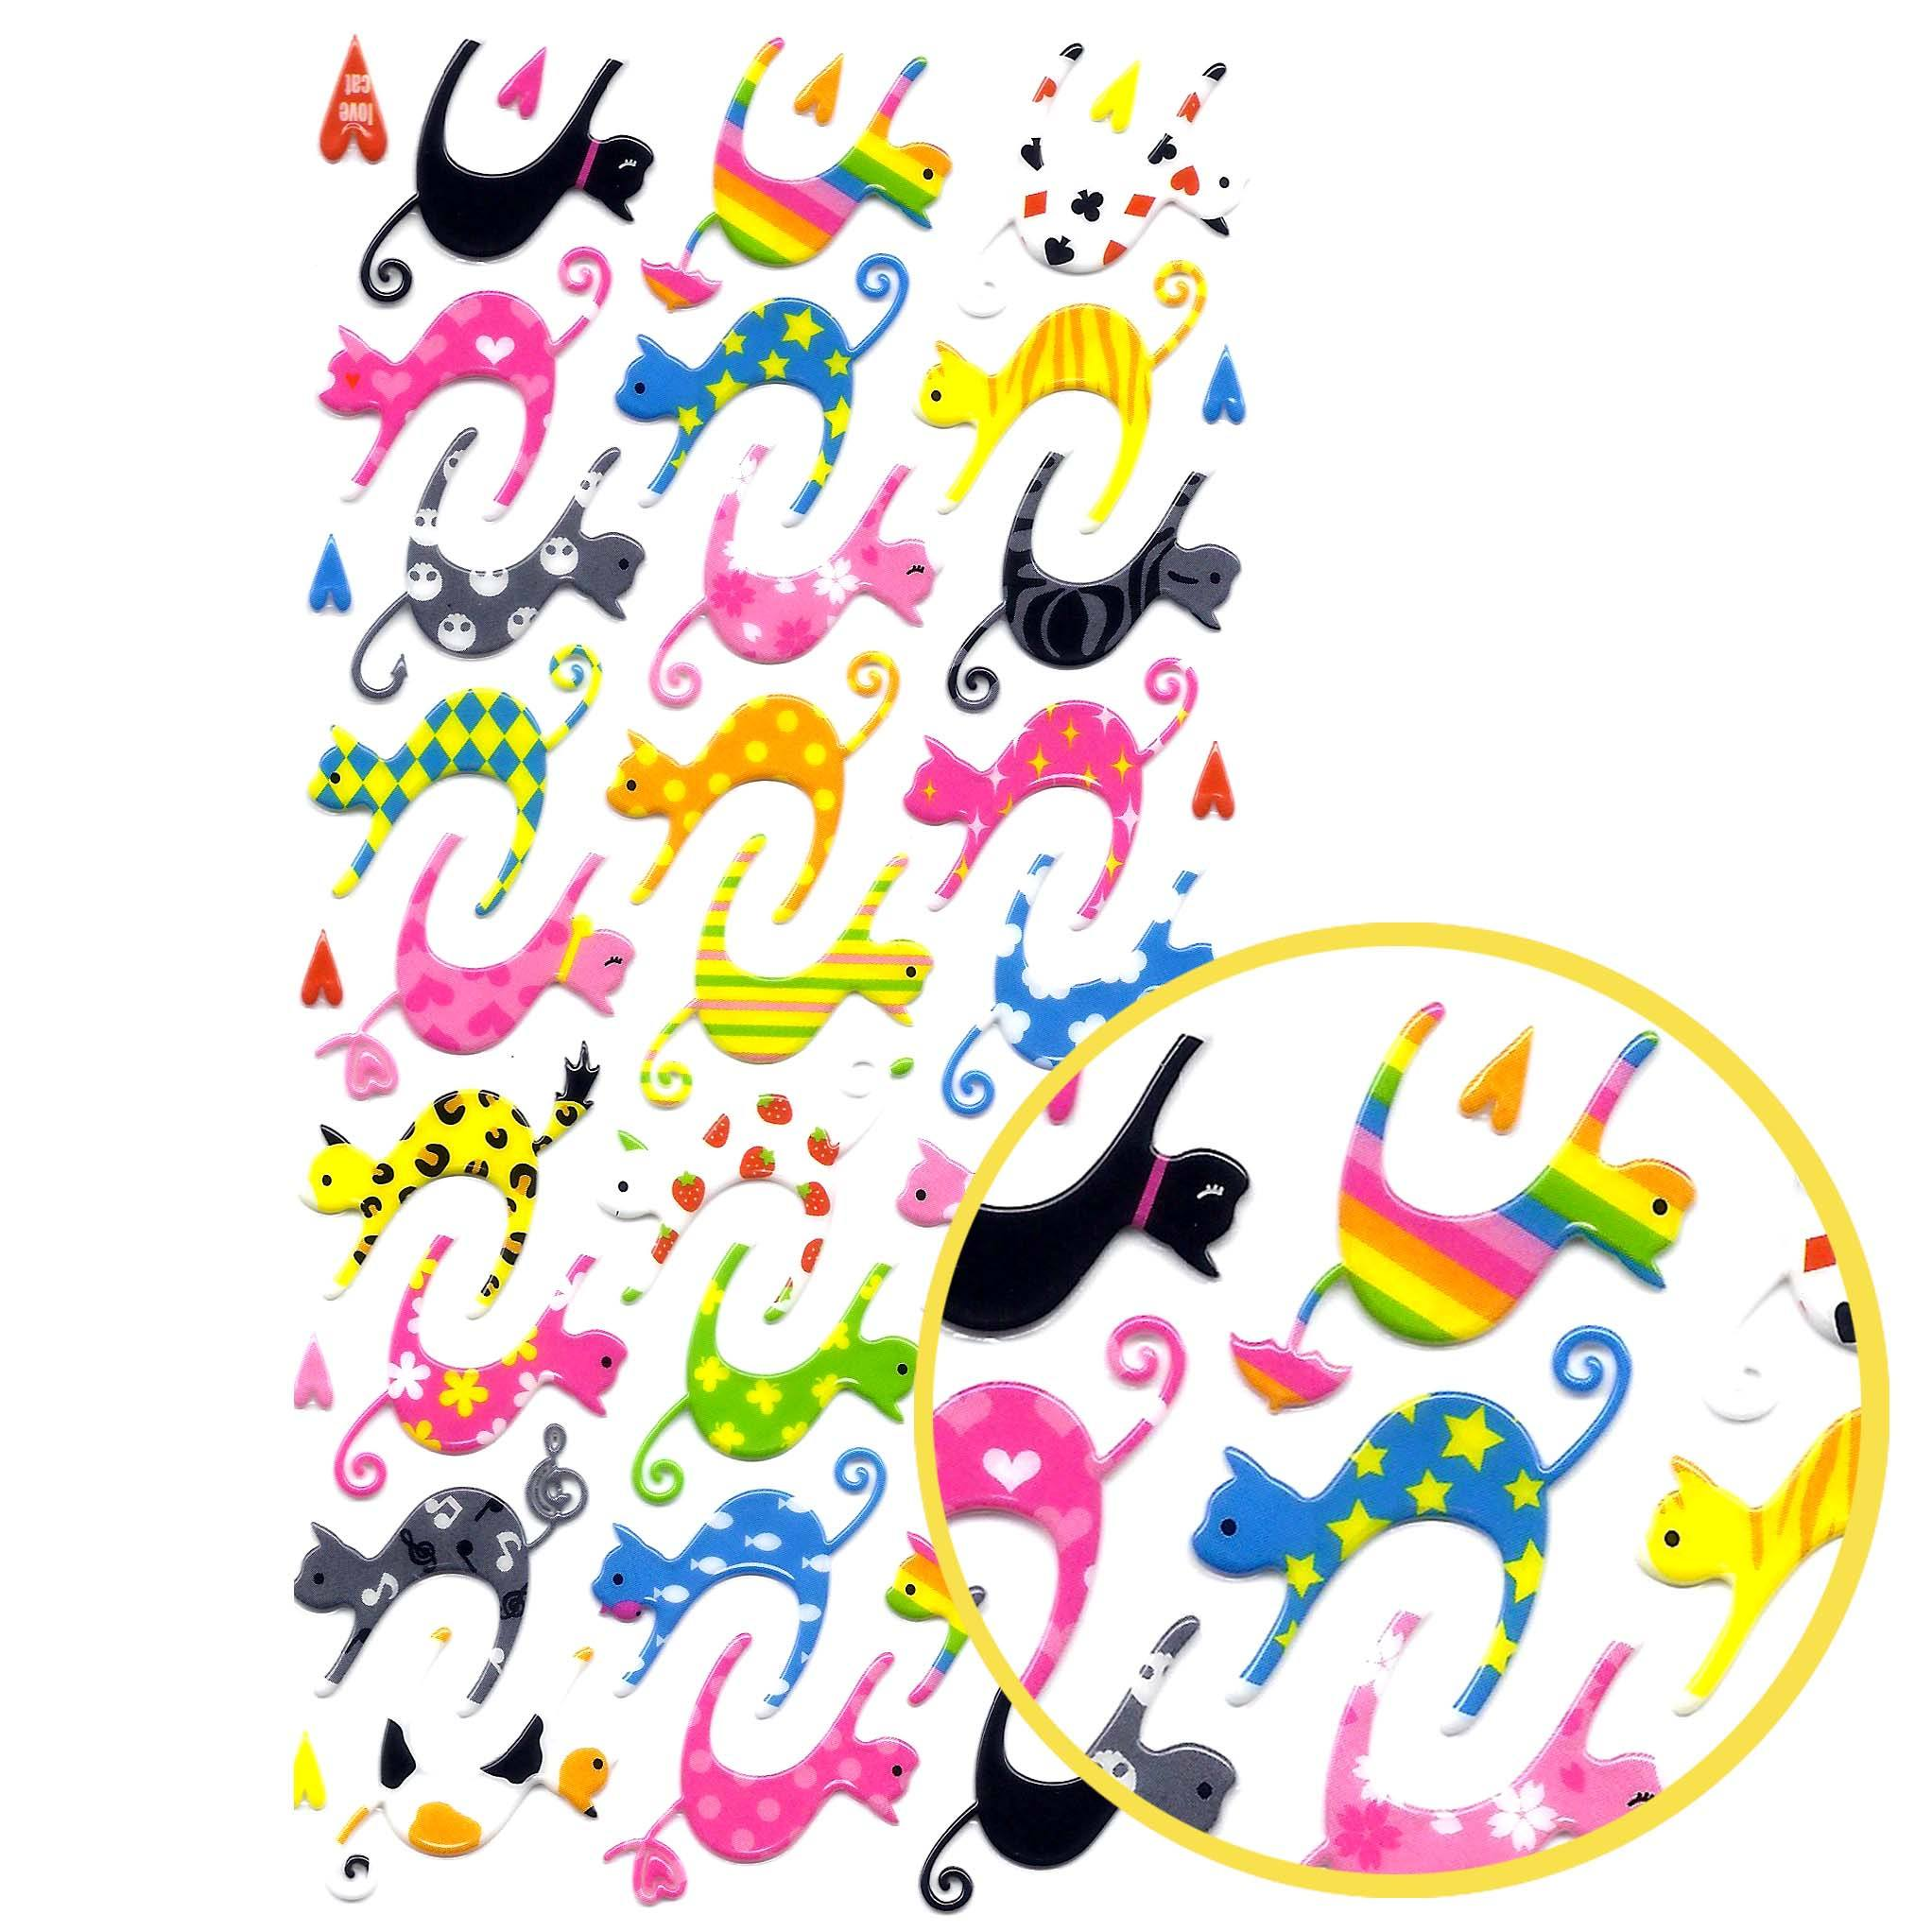 Colorful Kitty Cat Animal See Through Puffy Stickers for Scrapbooking